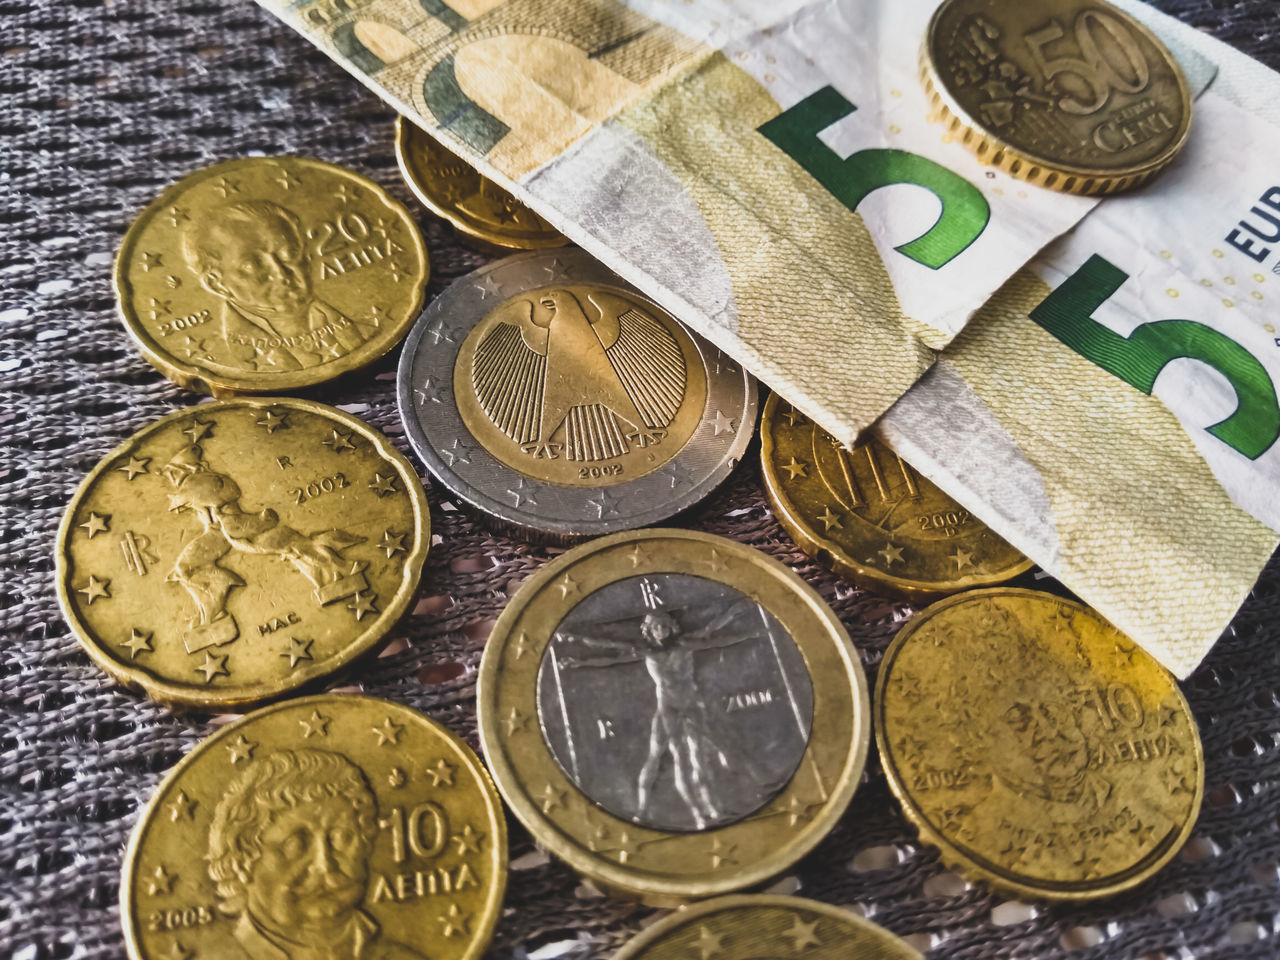 Finance Currency Gold Colored No People Close-up Indoors  Full Frame Gold Day Coin Money Euro Euro Coins European Union Euro Currency Five Euro Two Euros Coin 50 Cent  20 Cent 2 Euro 1 Euro Currency European Central Bank EyeEm Best Shots Beauty In Nature